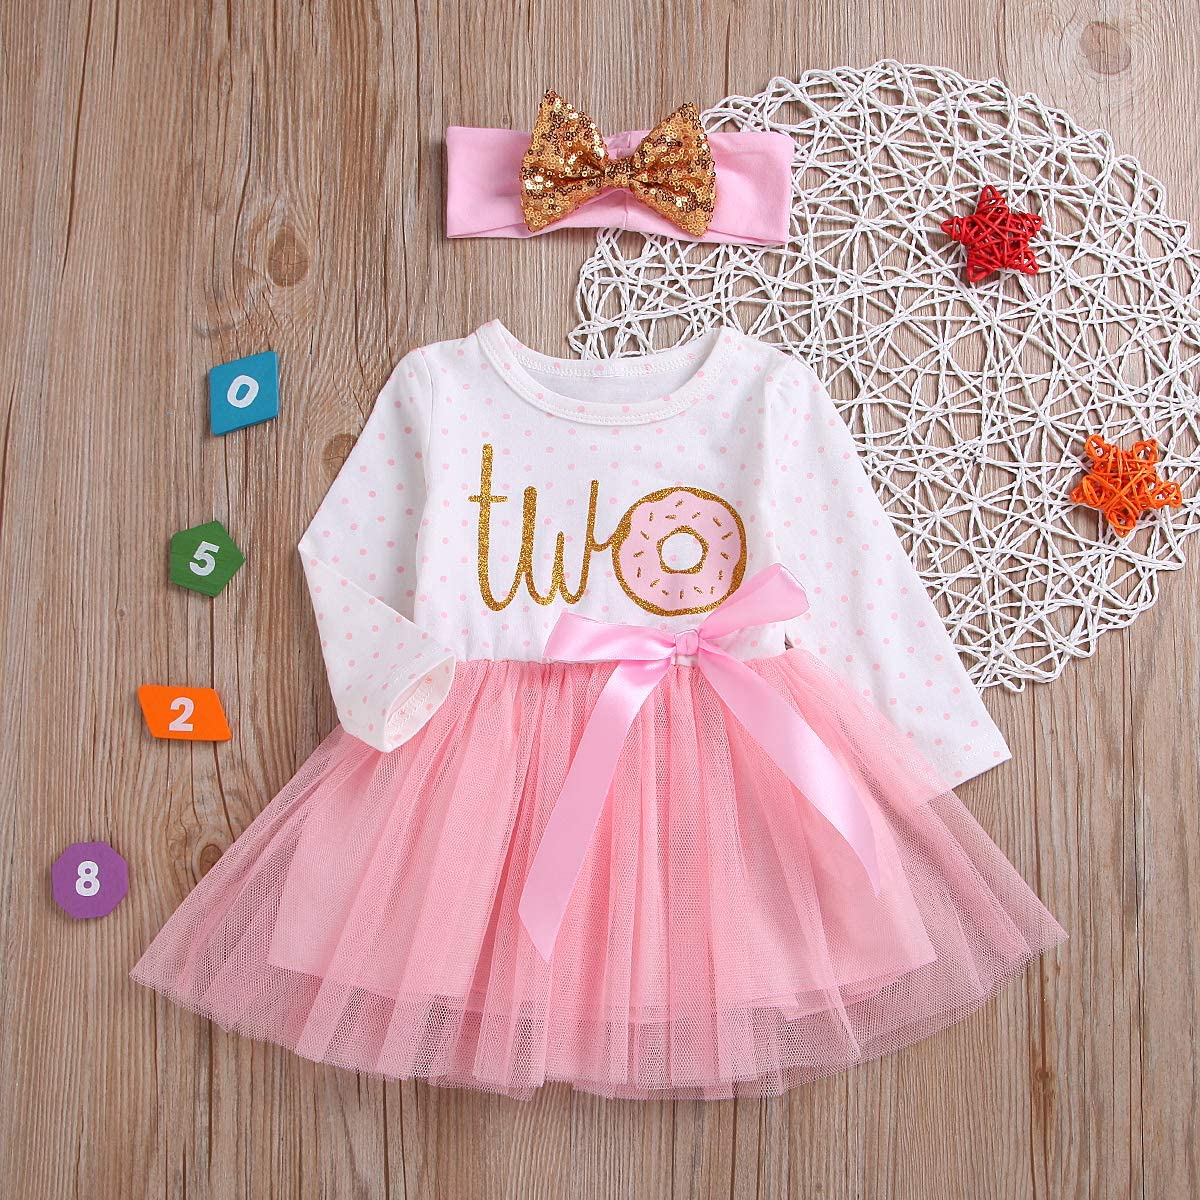 Karuedoo 2Pcs Baby Girls Tutu Dress 1st Birthday Outfit Donut Letter Print Top Tulle Tutu Skirt with Headband Outfit Set